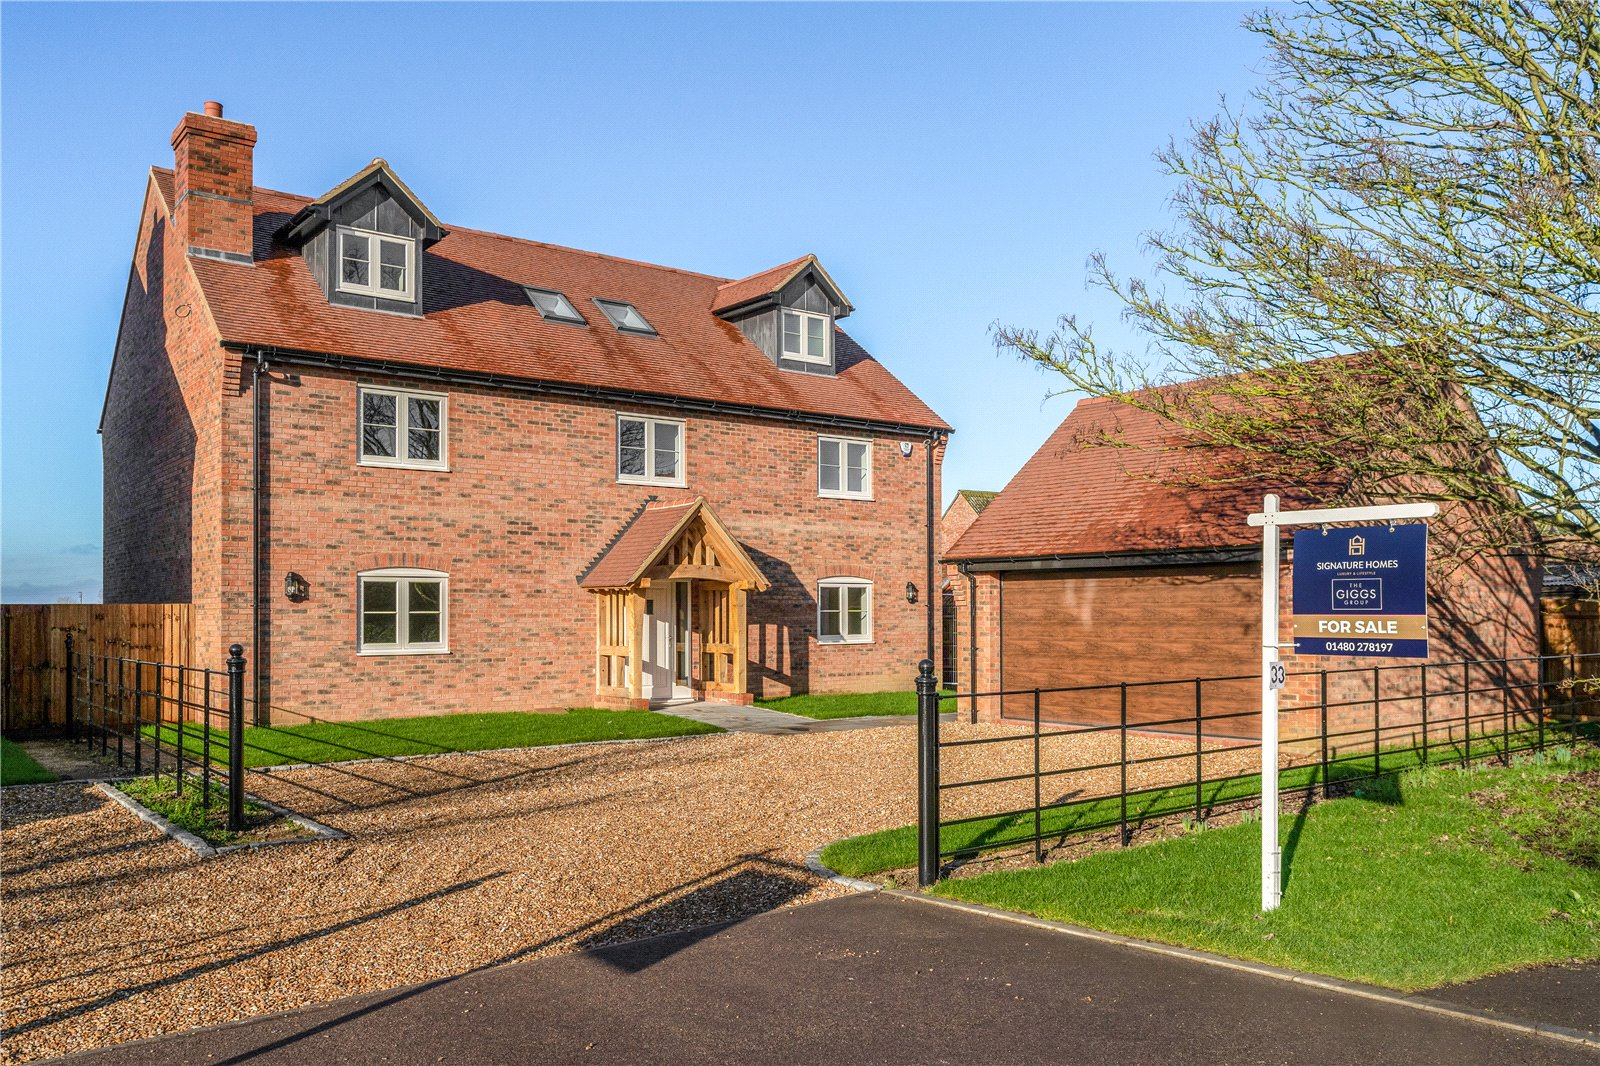 5 bed house for sale in Blunham, MK44 3NS, MK44